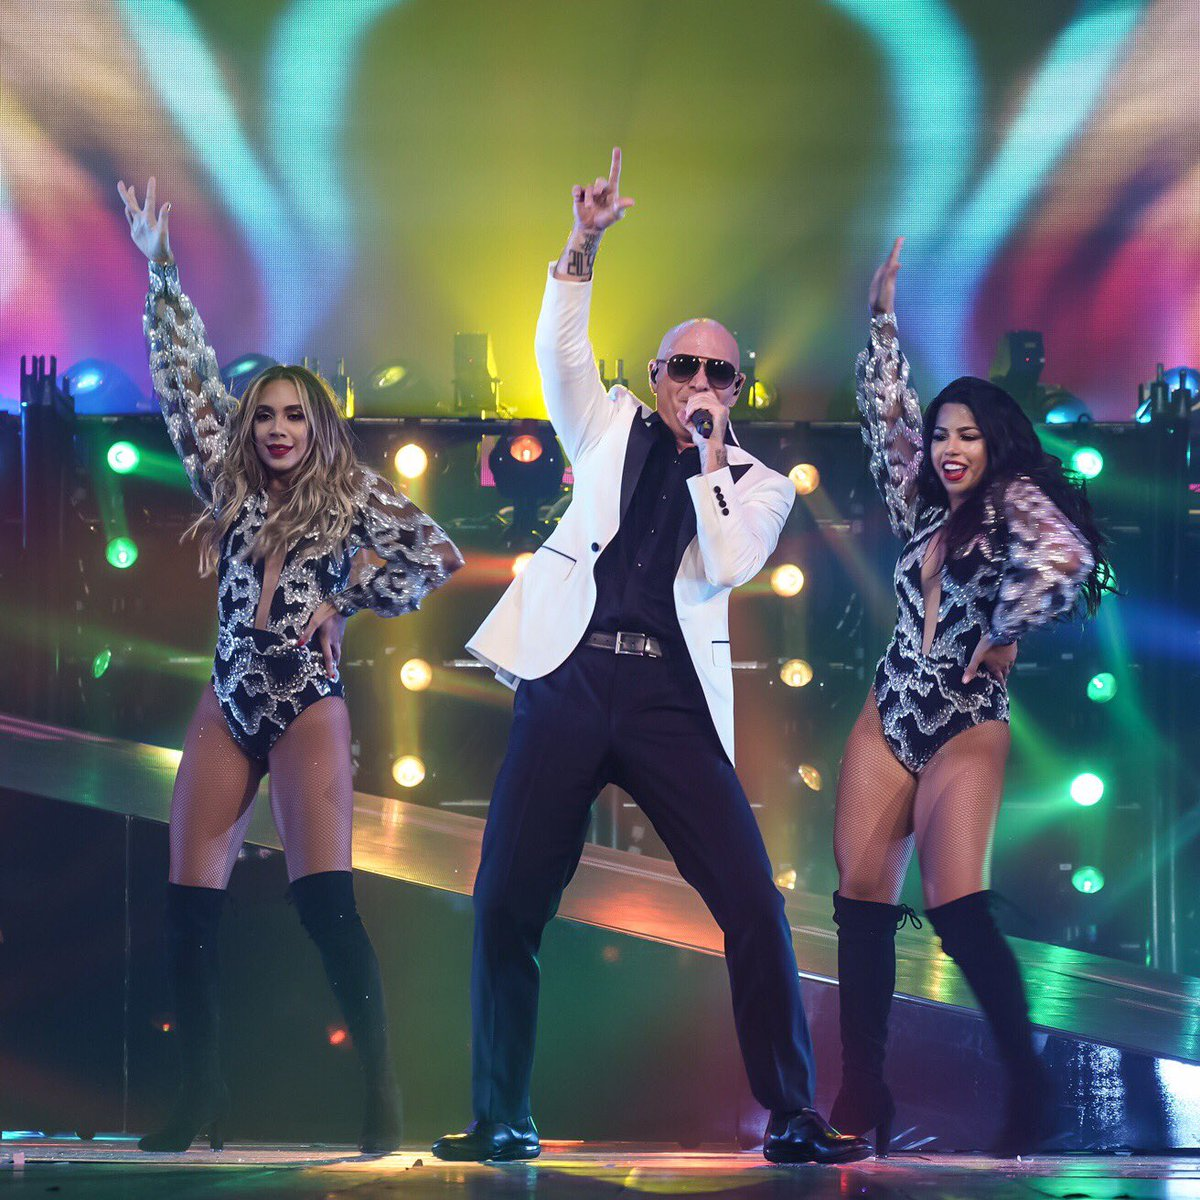 Denver was a party @TheMostBadOnes #Dale https://t.co/3Q0XefwEPr